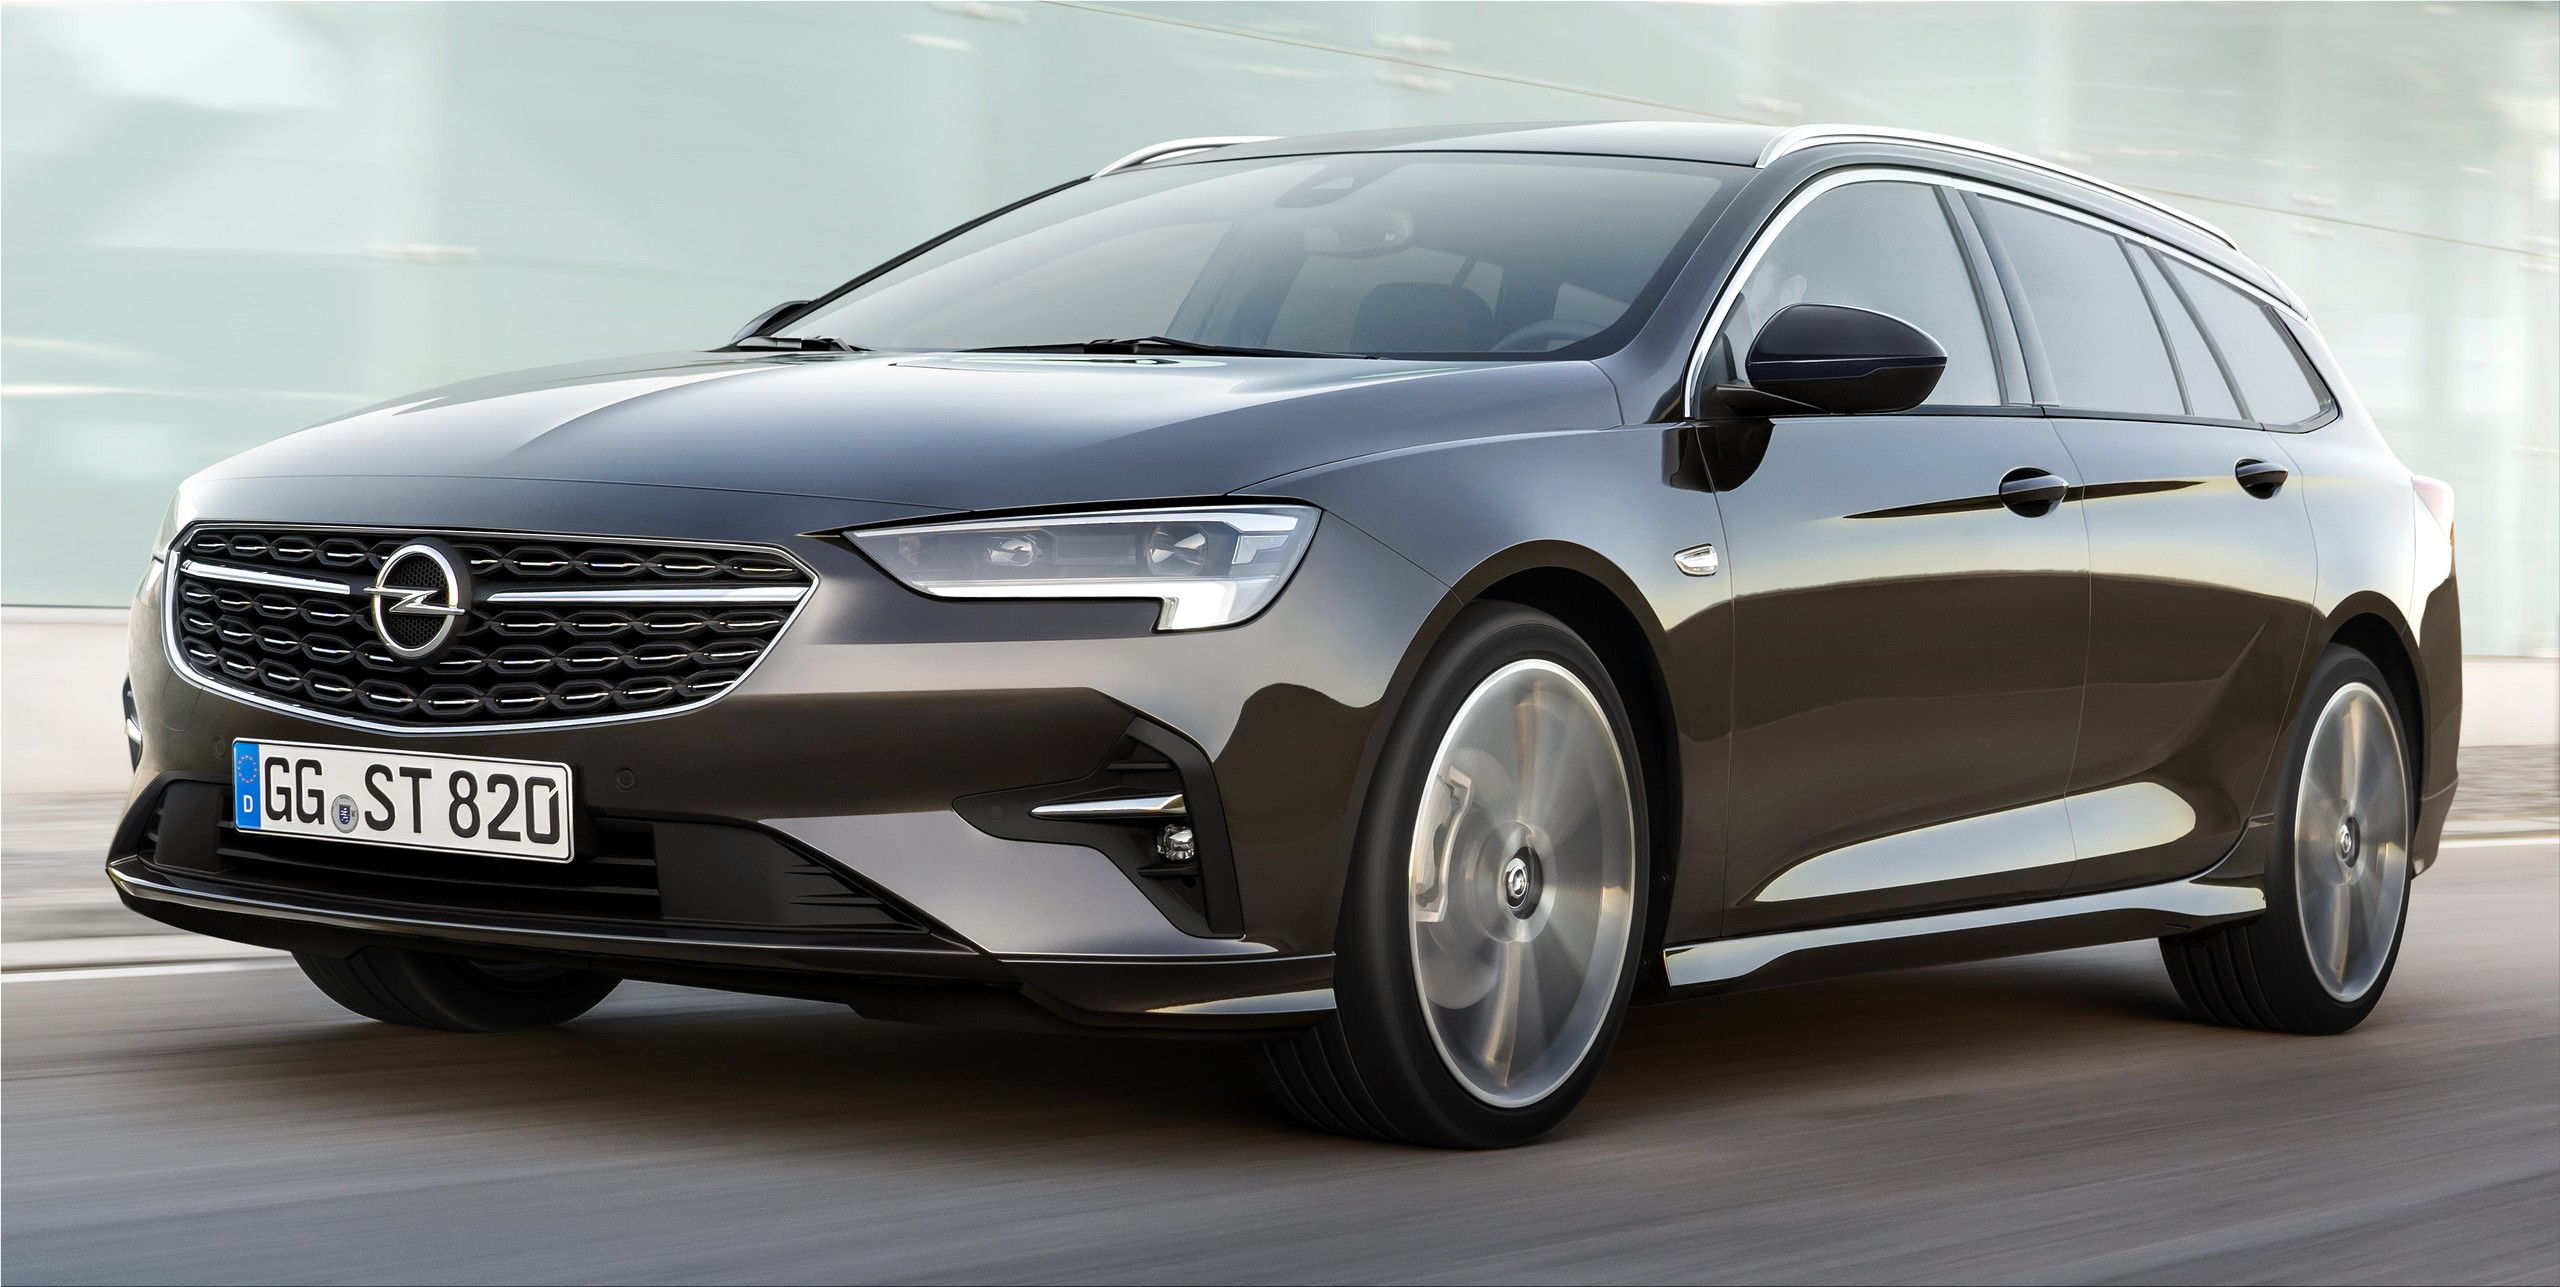 opel insignia facelift from € 25000opel